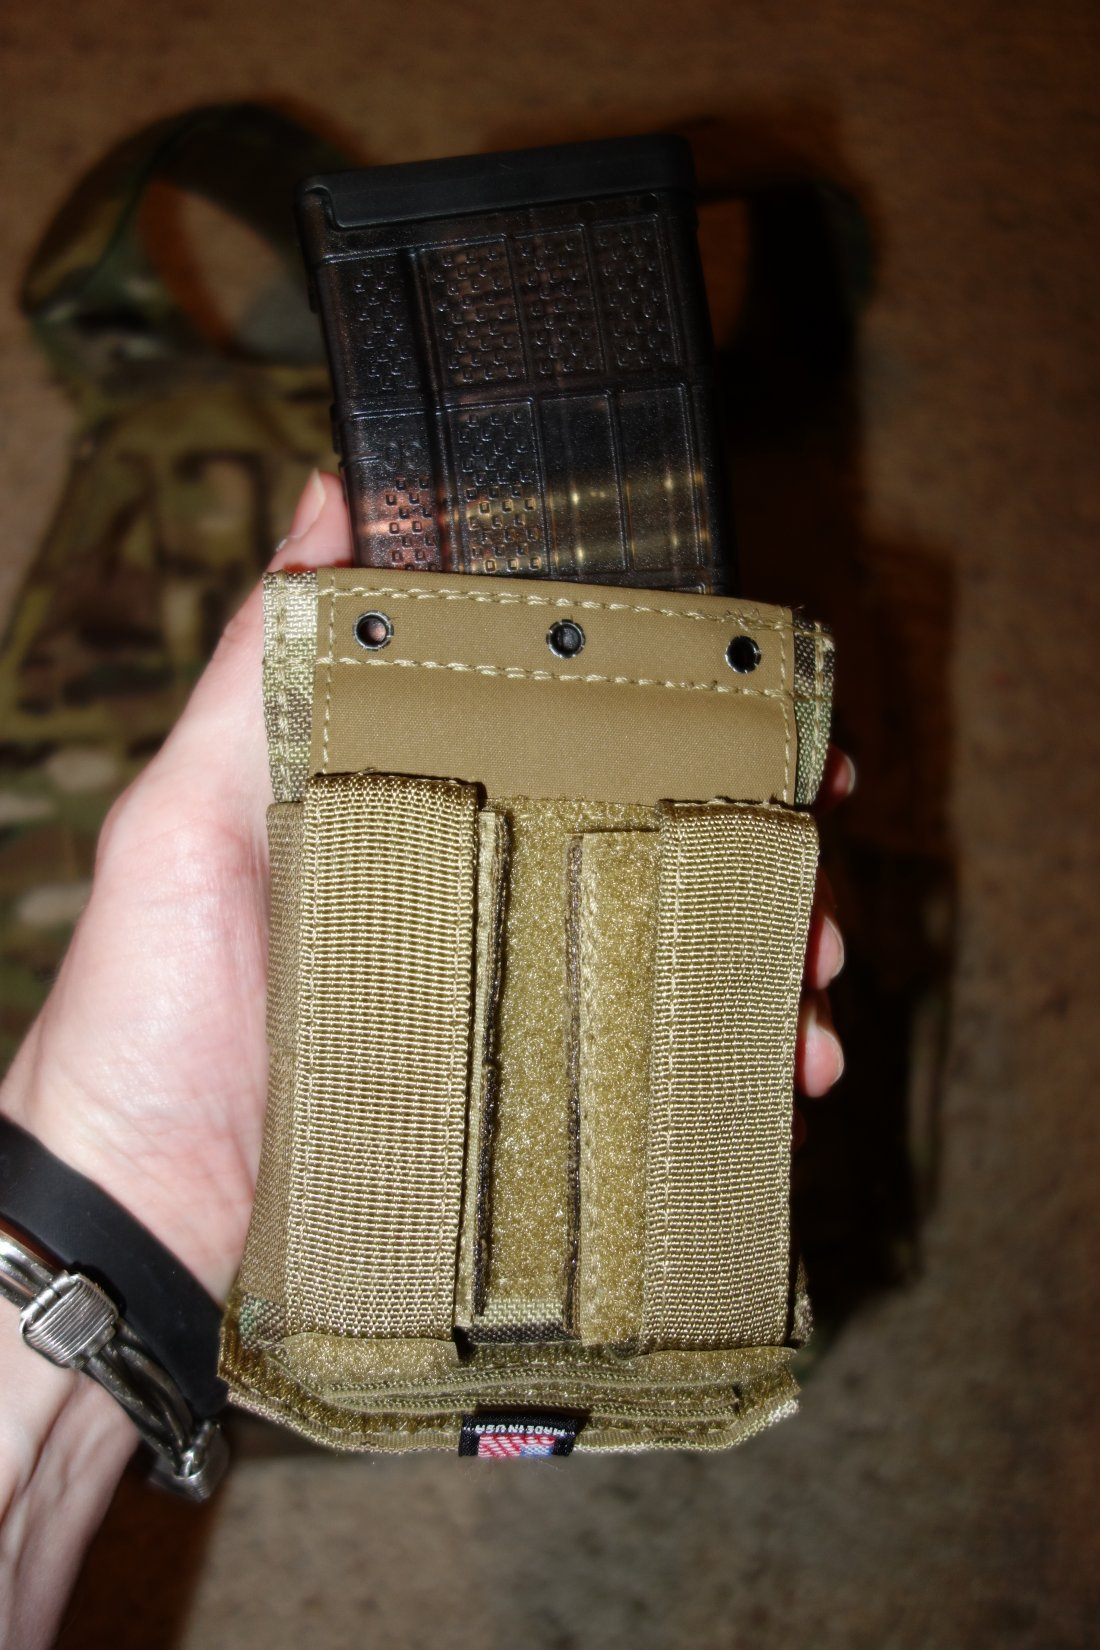 Hard Point Equipment Universal Mag Carrier UMC Universal Magazine Carrier Mag Pouch for Tactical Body Armor Carriers and Battle Belts David Crane DefenseReview.com DR 19 Tired of Tacos? Load Your Tactical Vest (Armor Plate Carrier) with the Hard Point Universal Mag Carrier (UMC): One Modular Magazine Pouch Handles 5.56mm and 7.62mm Rifle Magazines and Pistol Mags